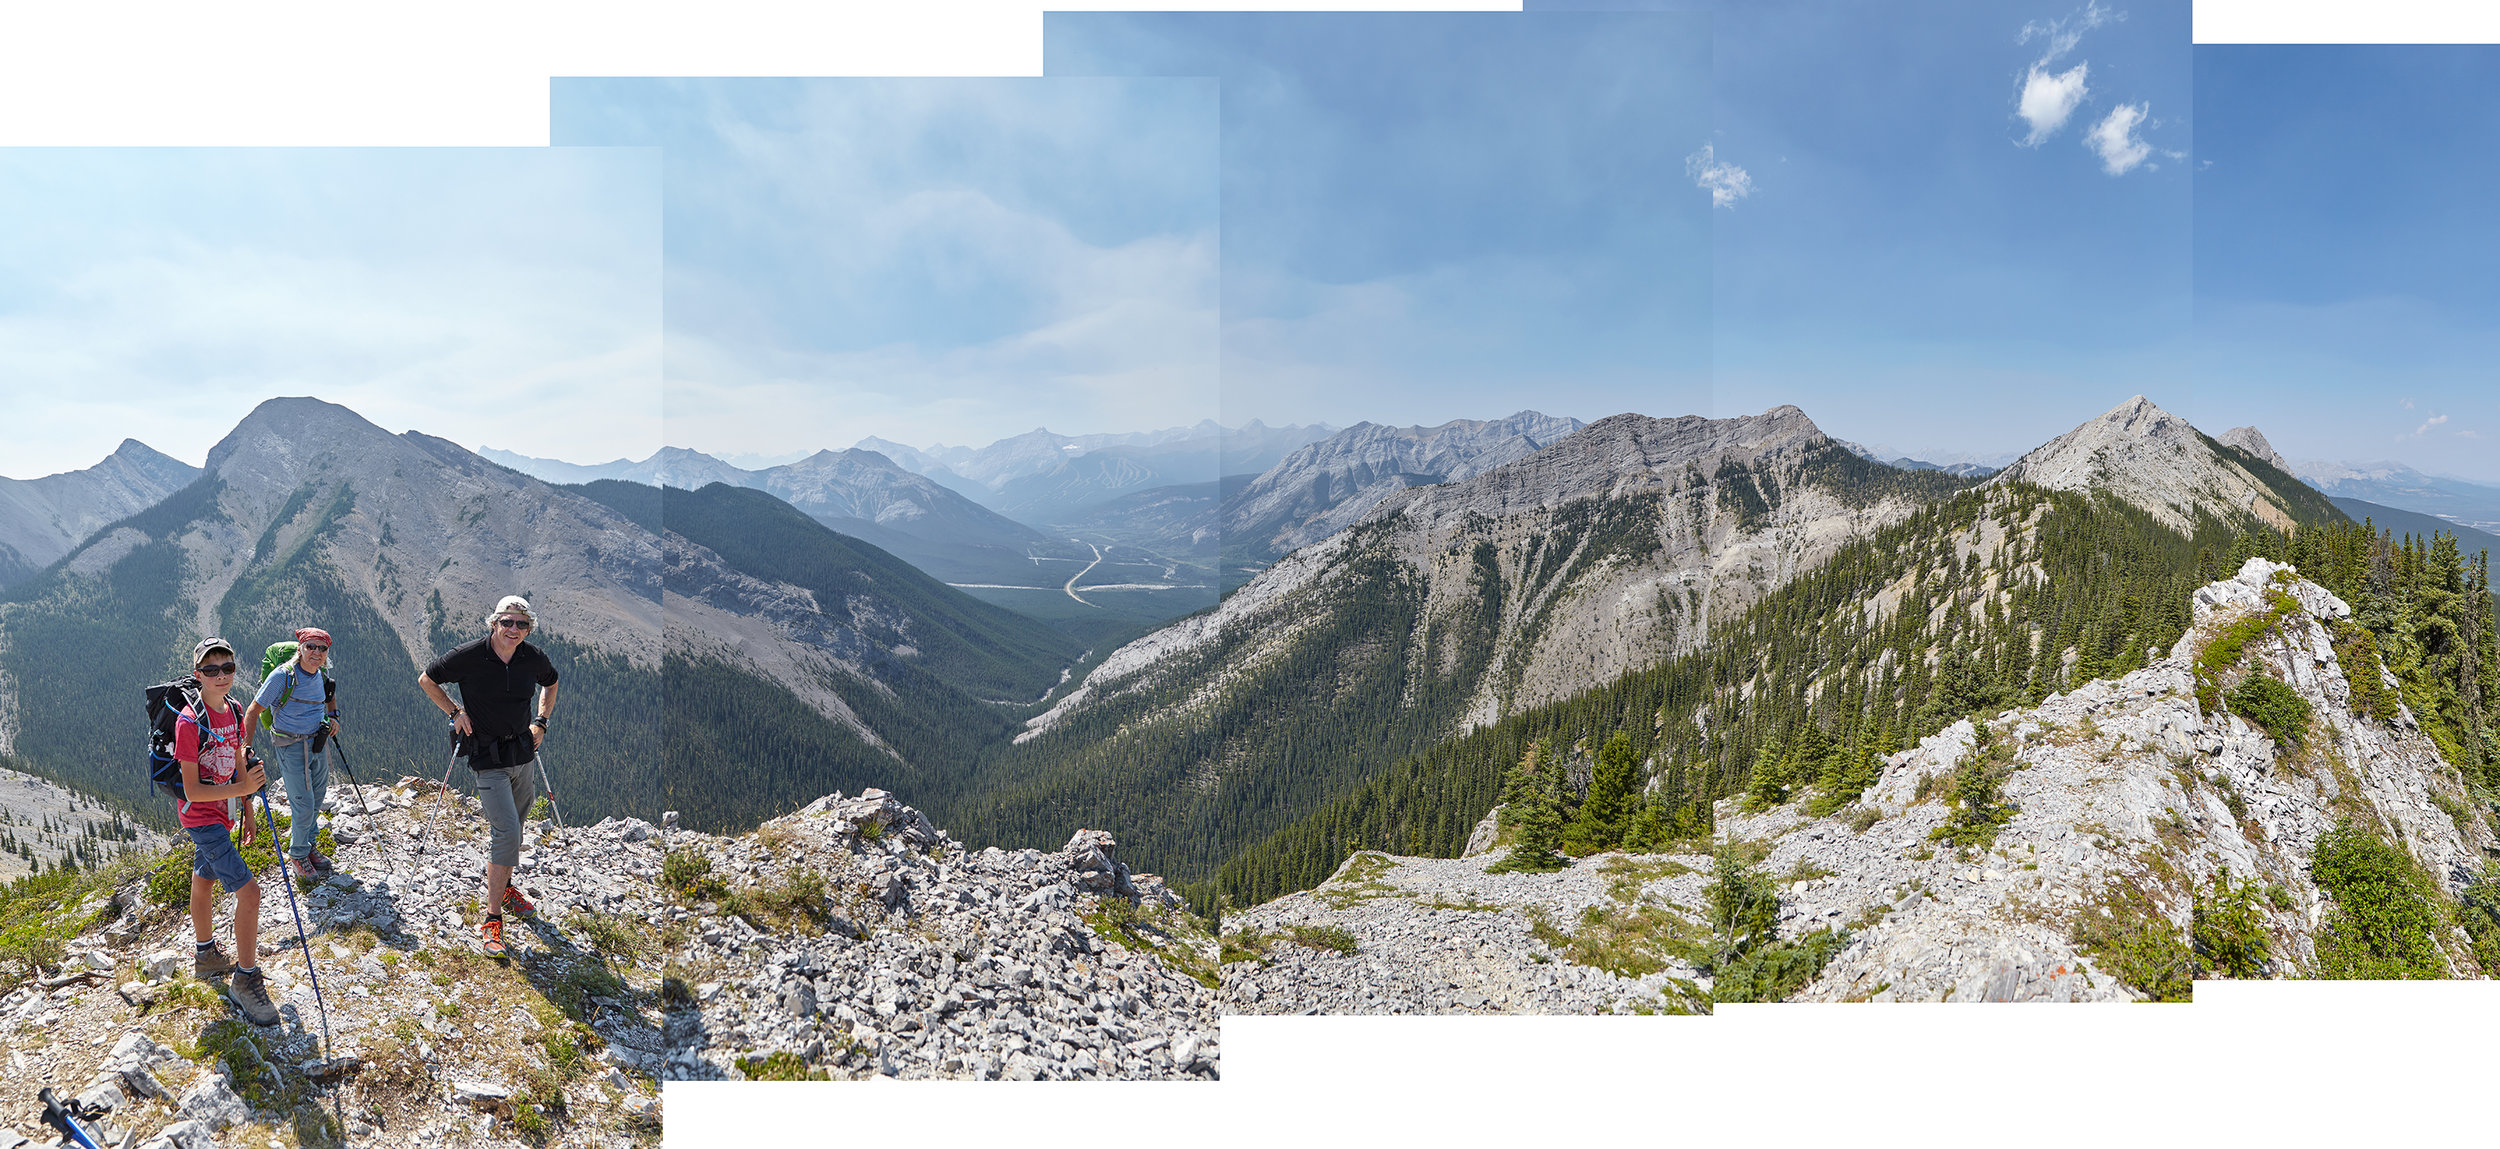 A panorama from the top of the crux gendarme. The summit of Baldy South is in the distance to the right.